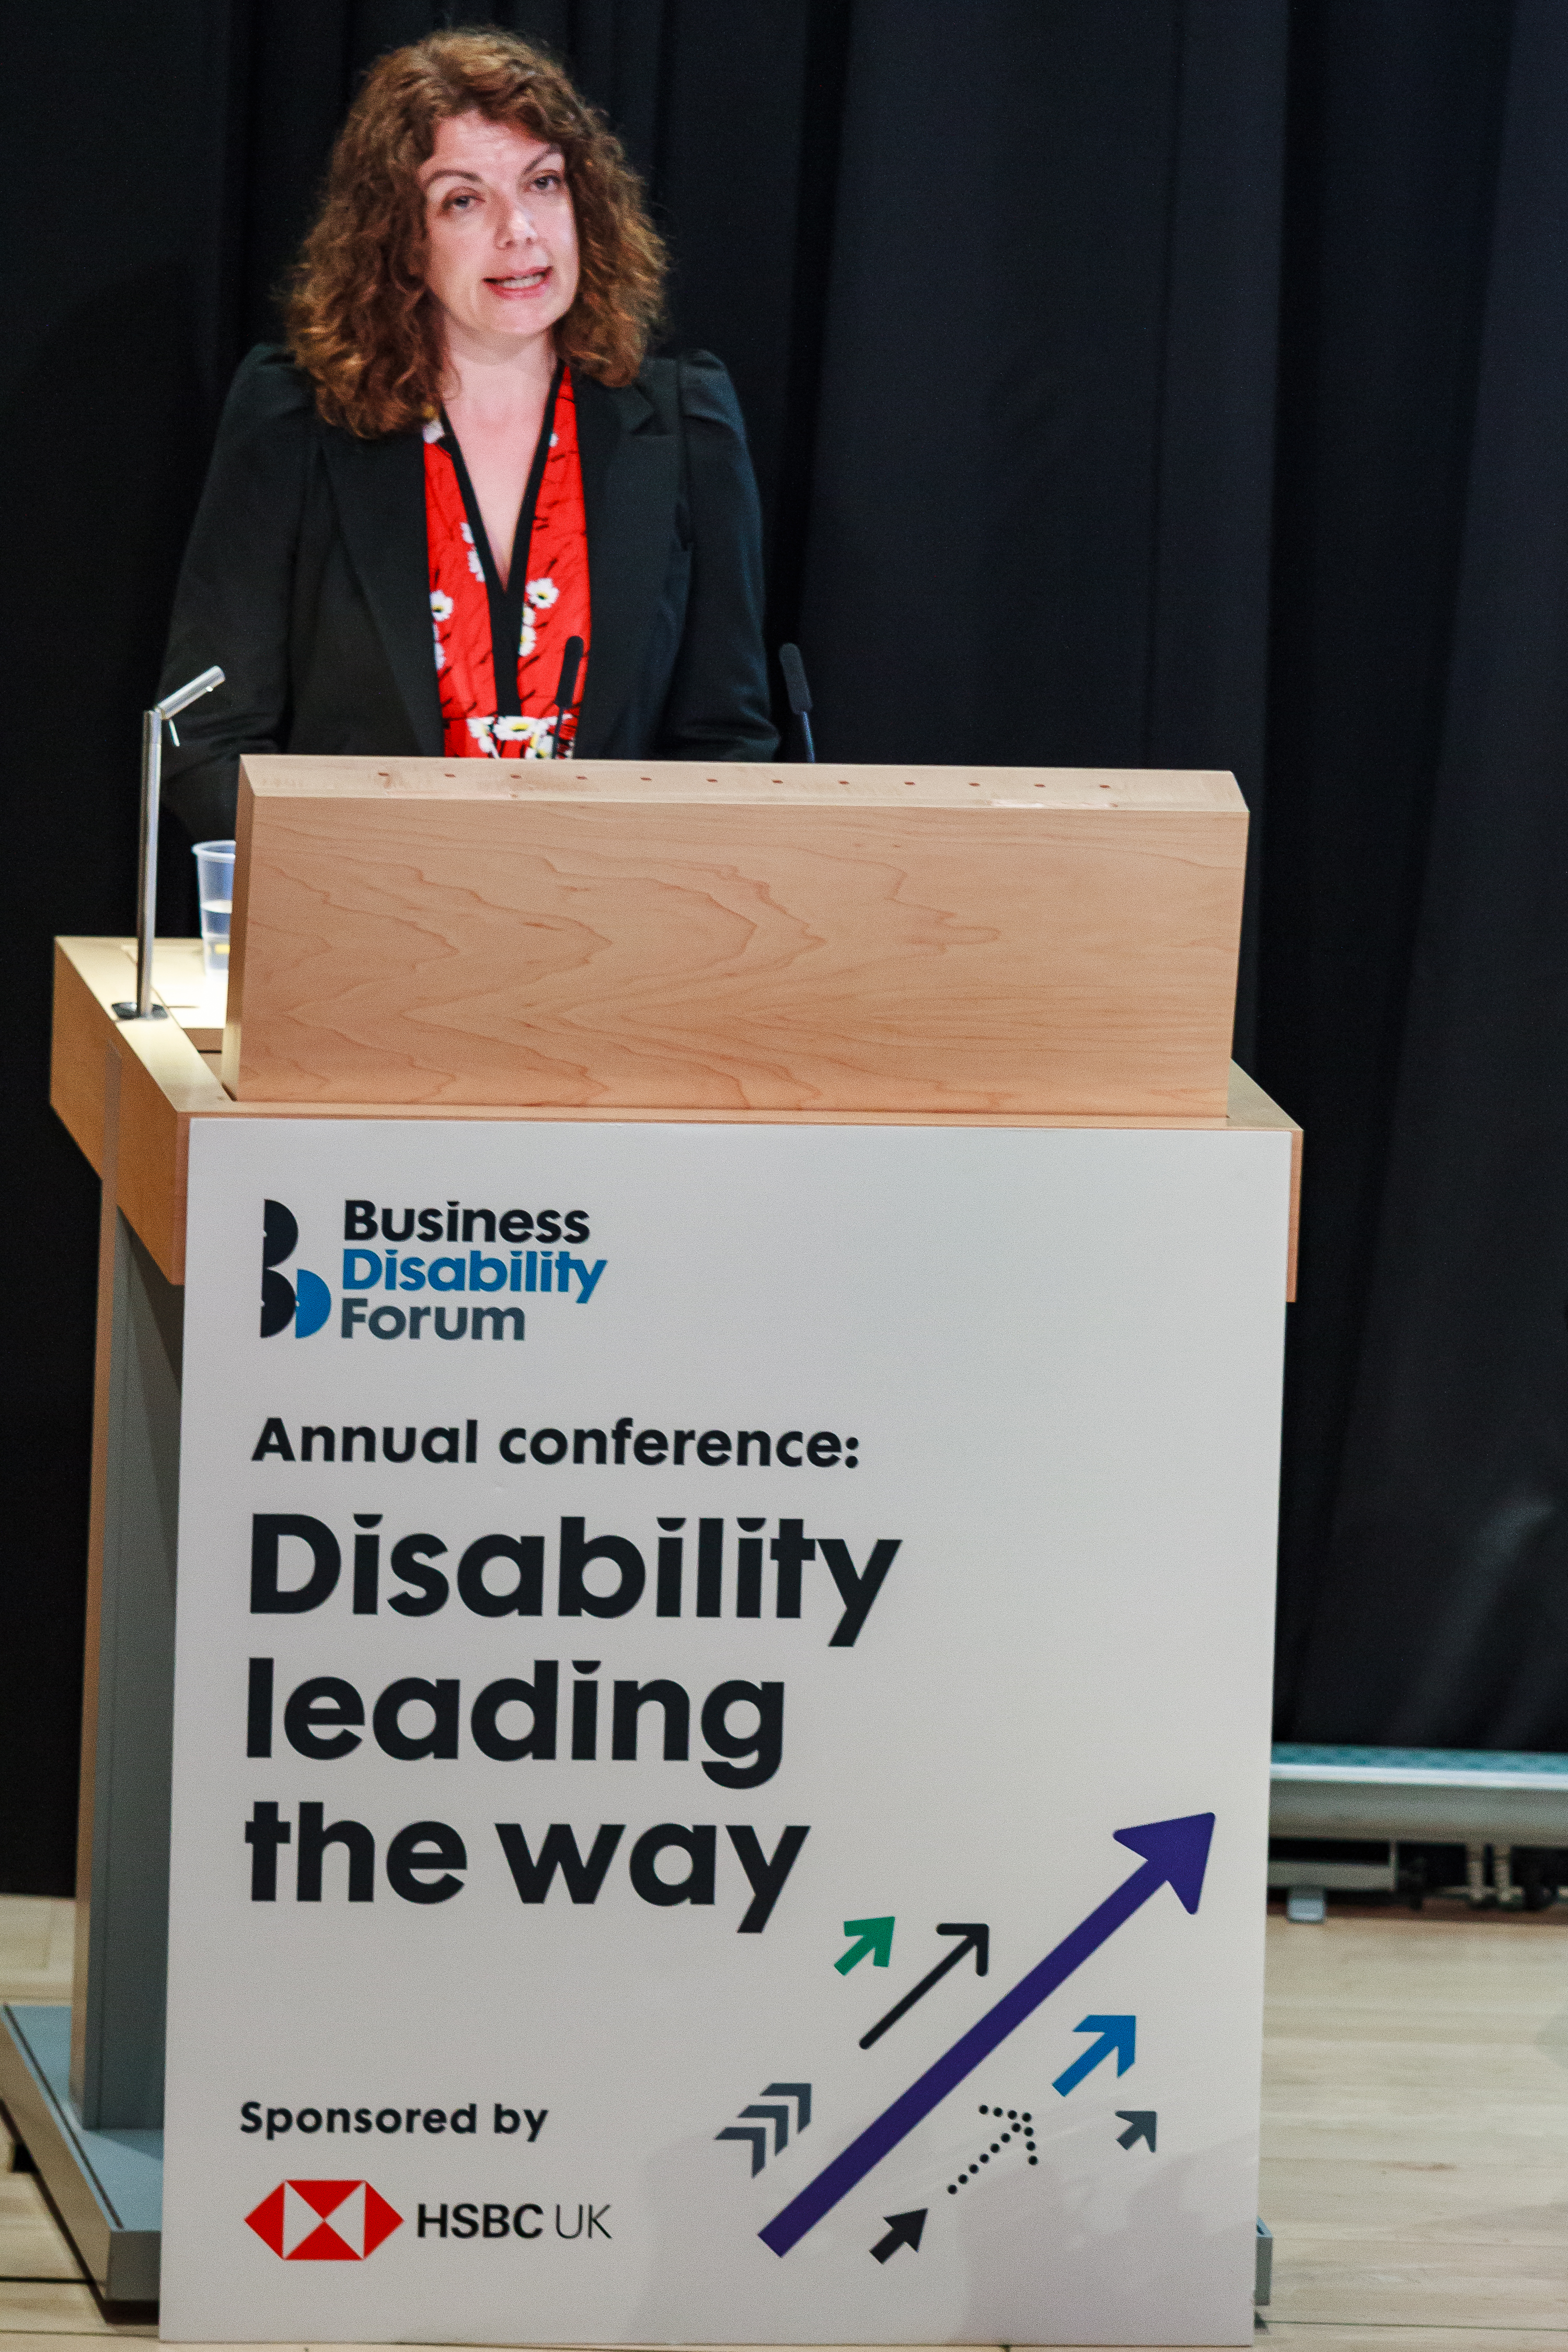 Diane Lightfoot, CEO of Business Disability Forum at the lectern of the annual conference Disability leading the way